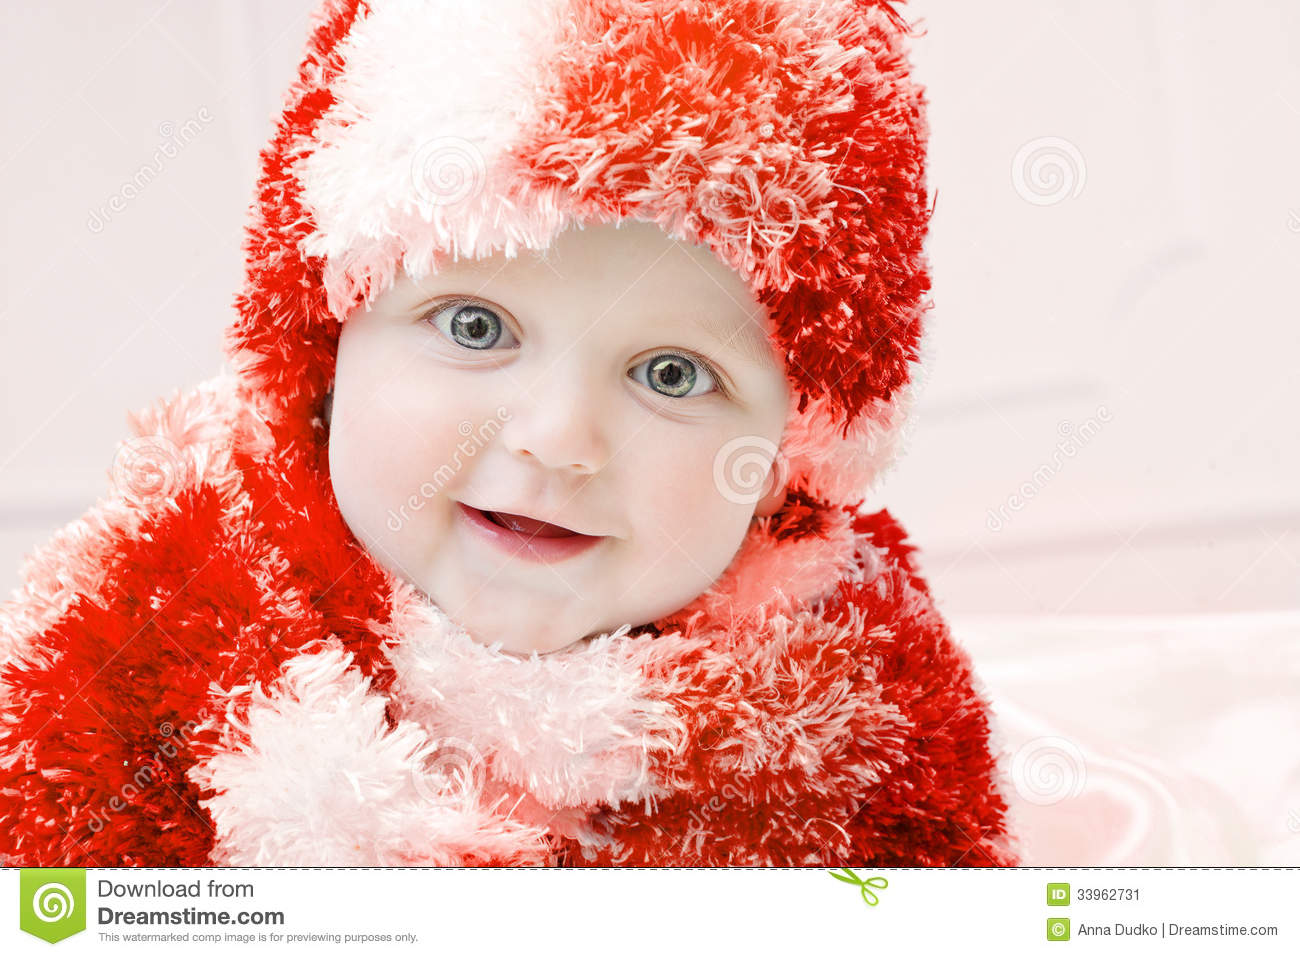 58f03c7152b5 Cute Baby At Winter Background Stock Image - Image of beautiful ...